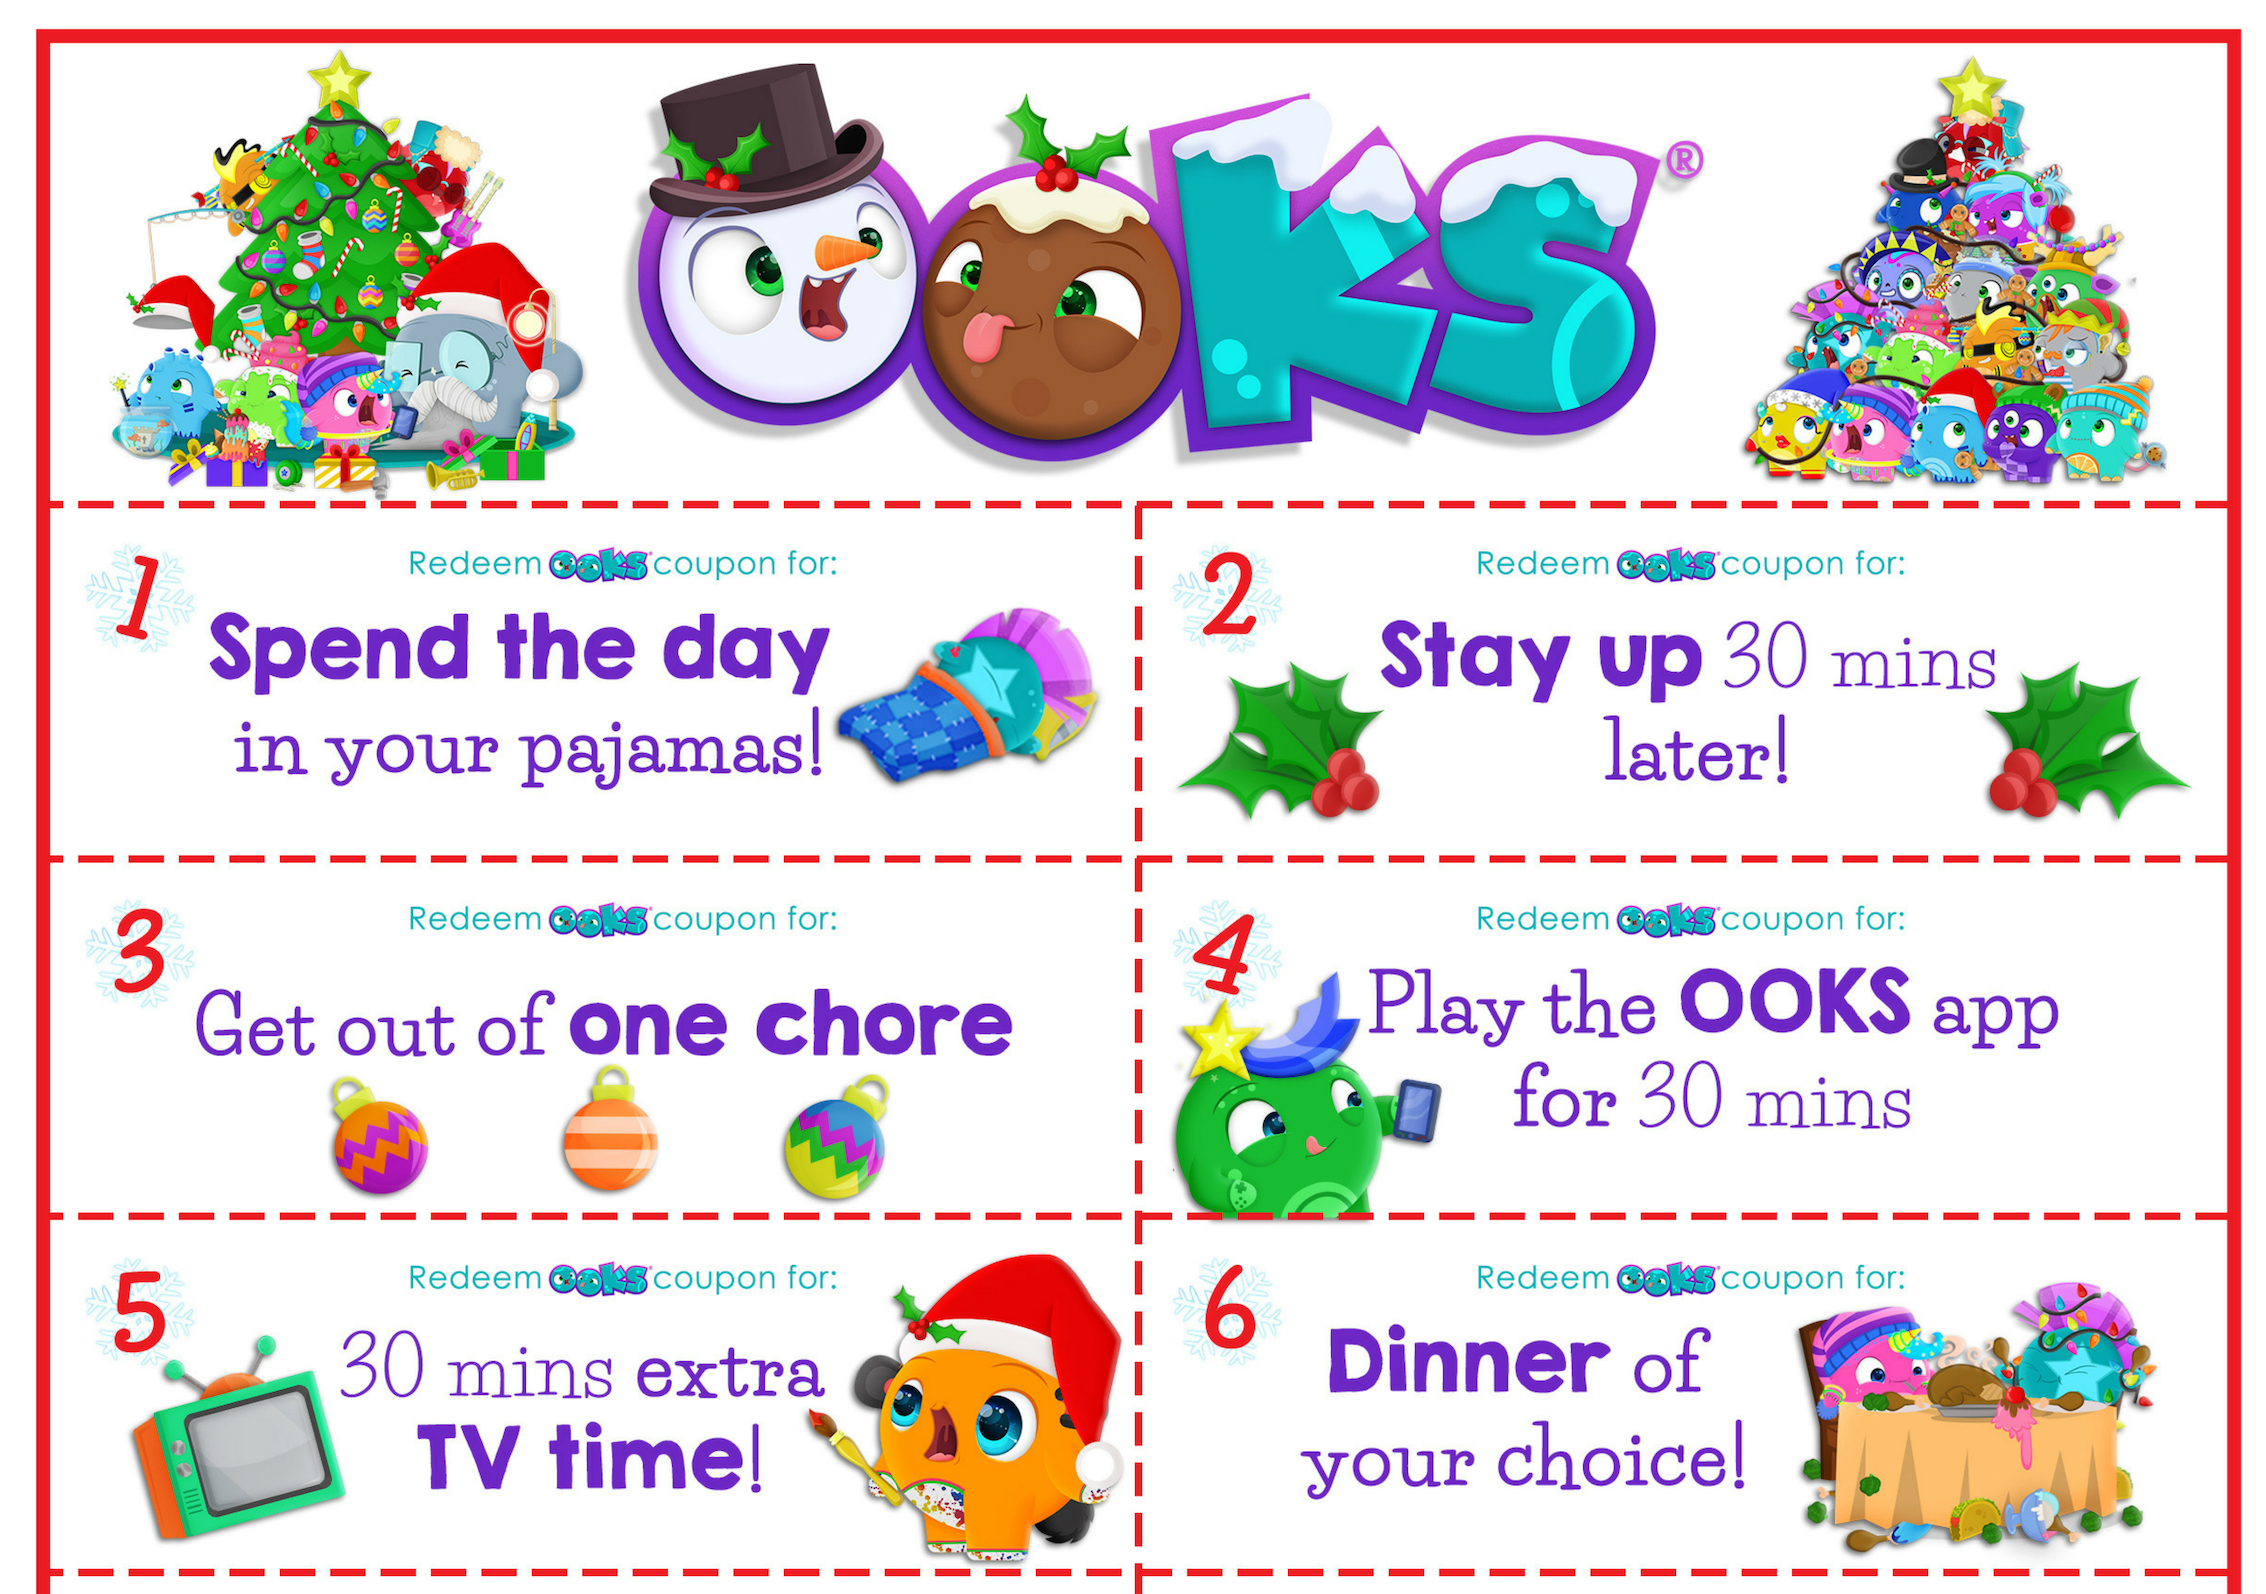 picture regarding 12 Days of Christmas Printable referred to as Totally free Printable: 12 Times of Xmas Discount coupons